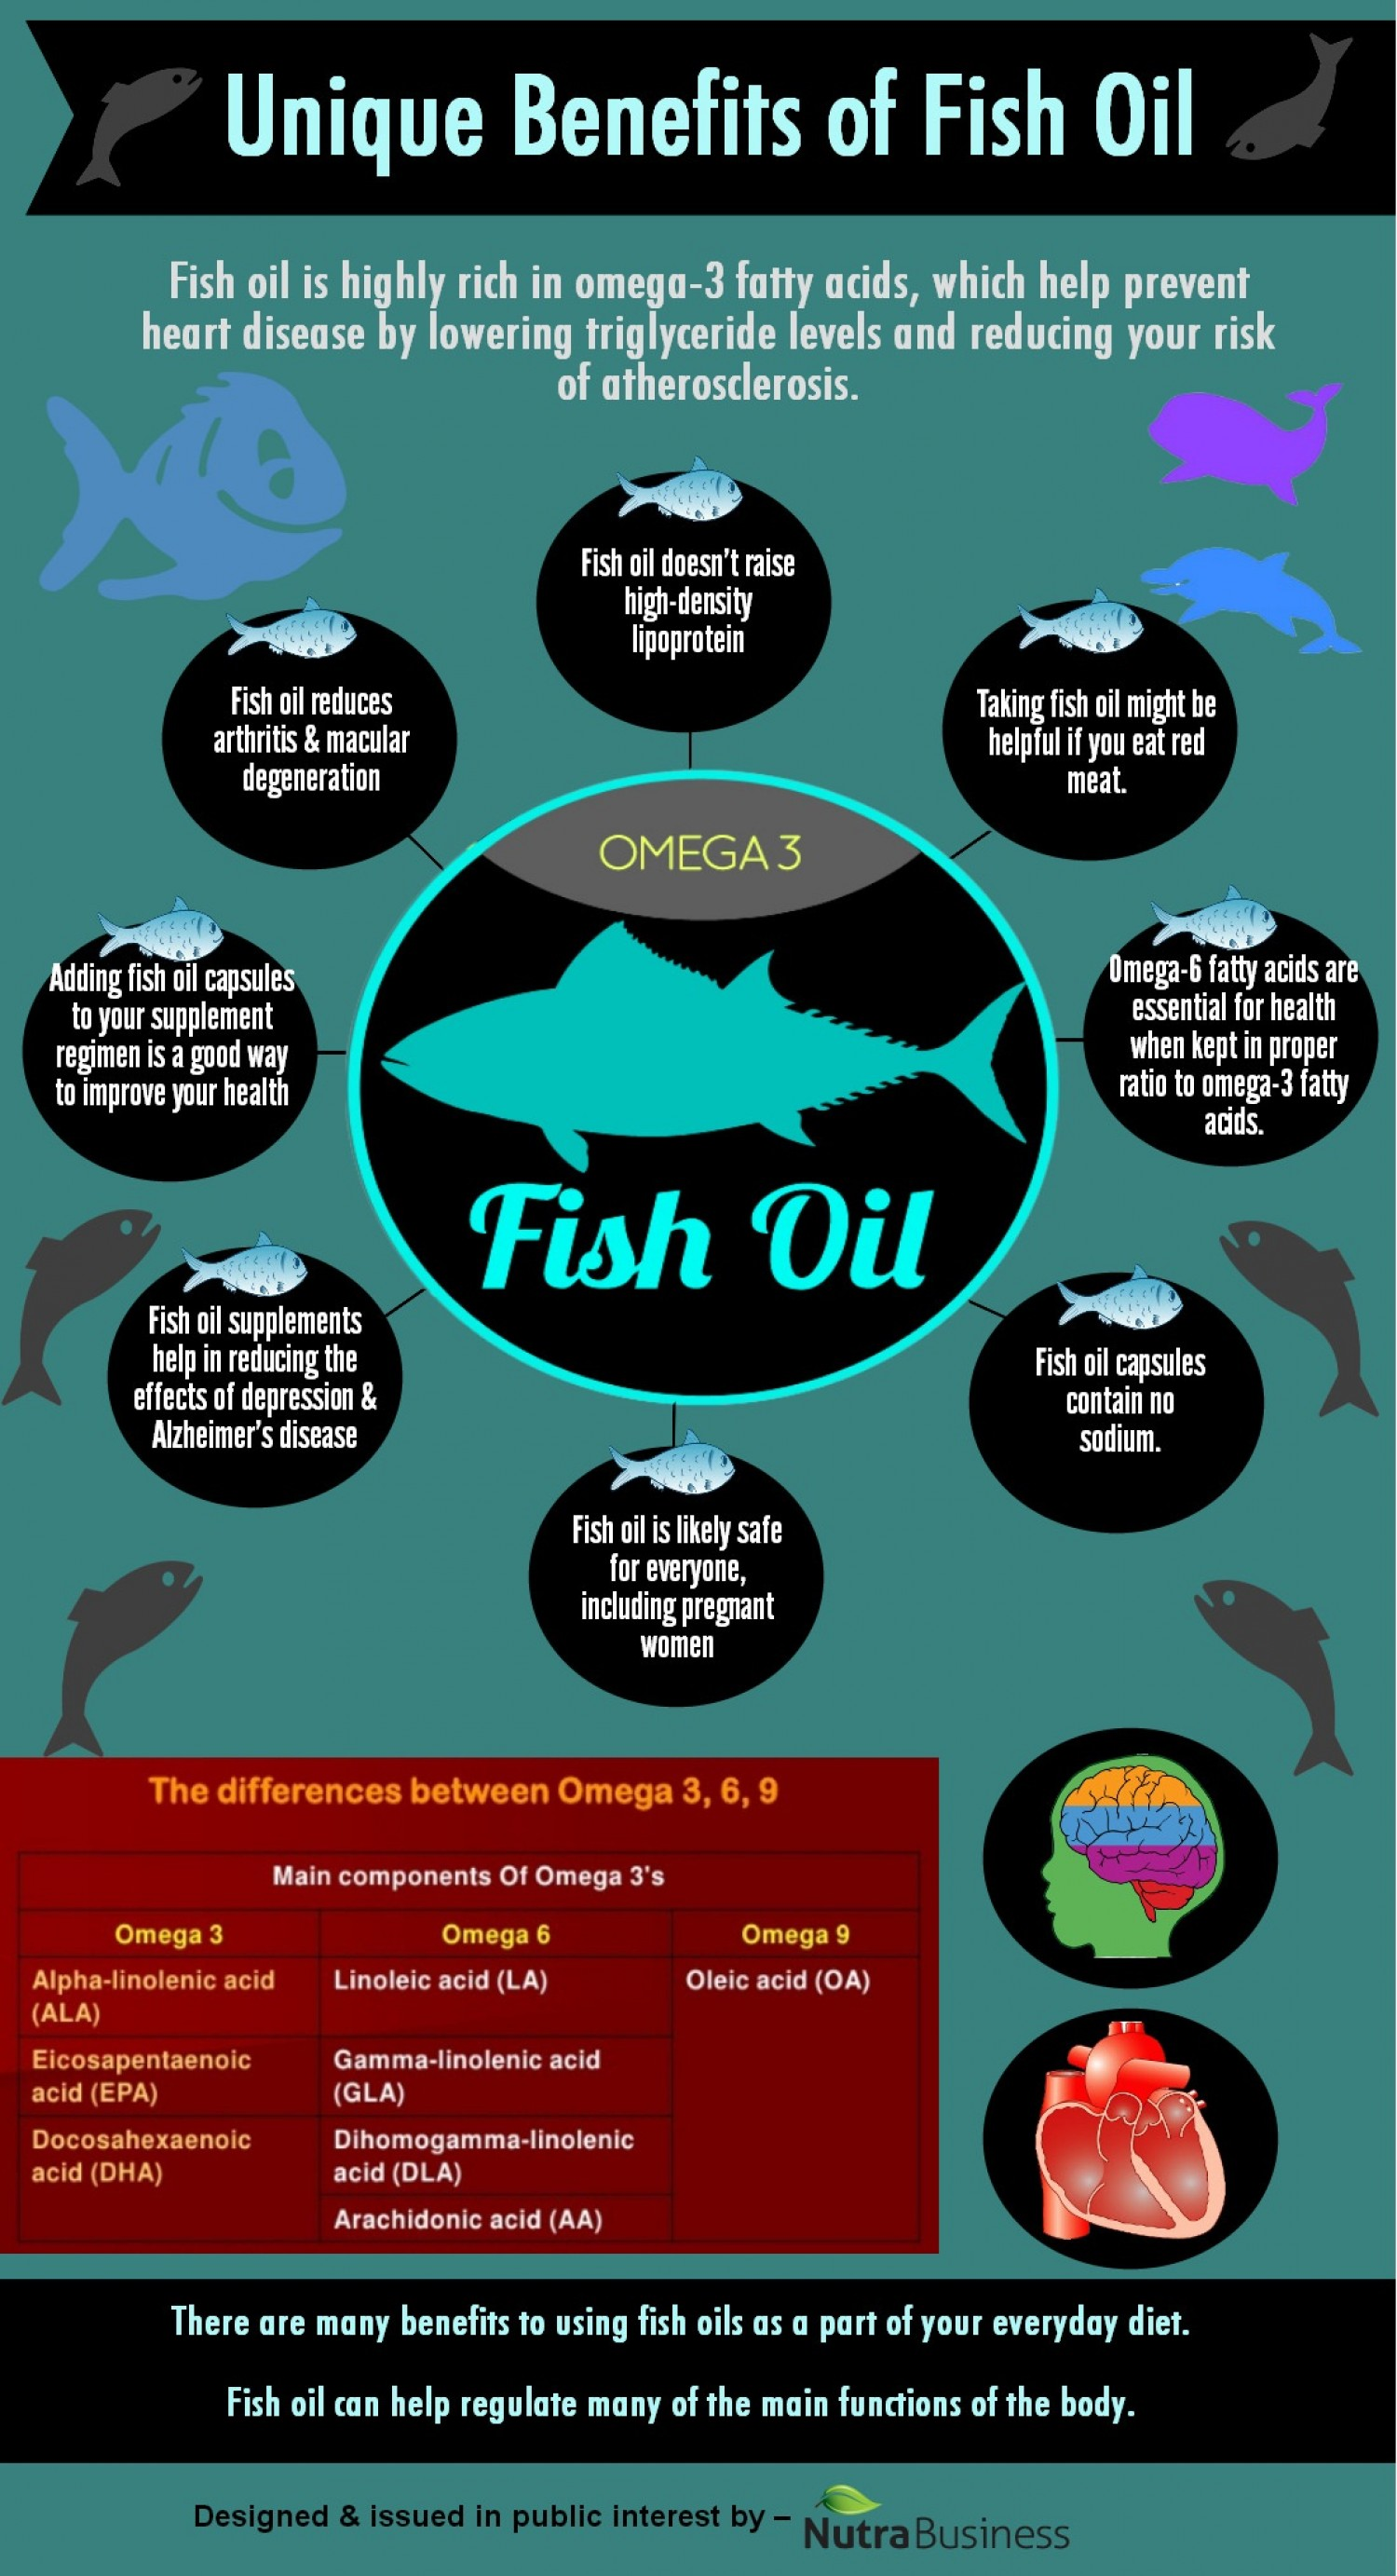 8 unique benefits of fish oil infographic for What are the benefits of fish oil